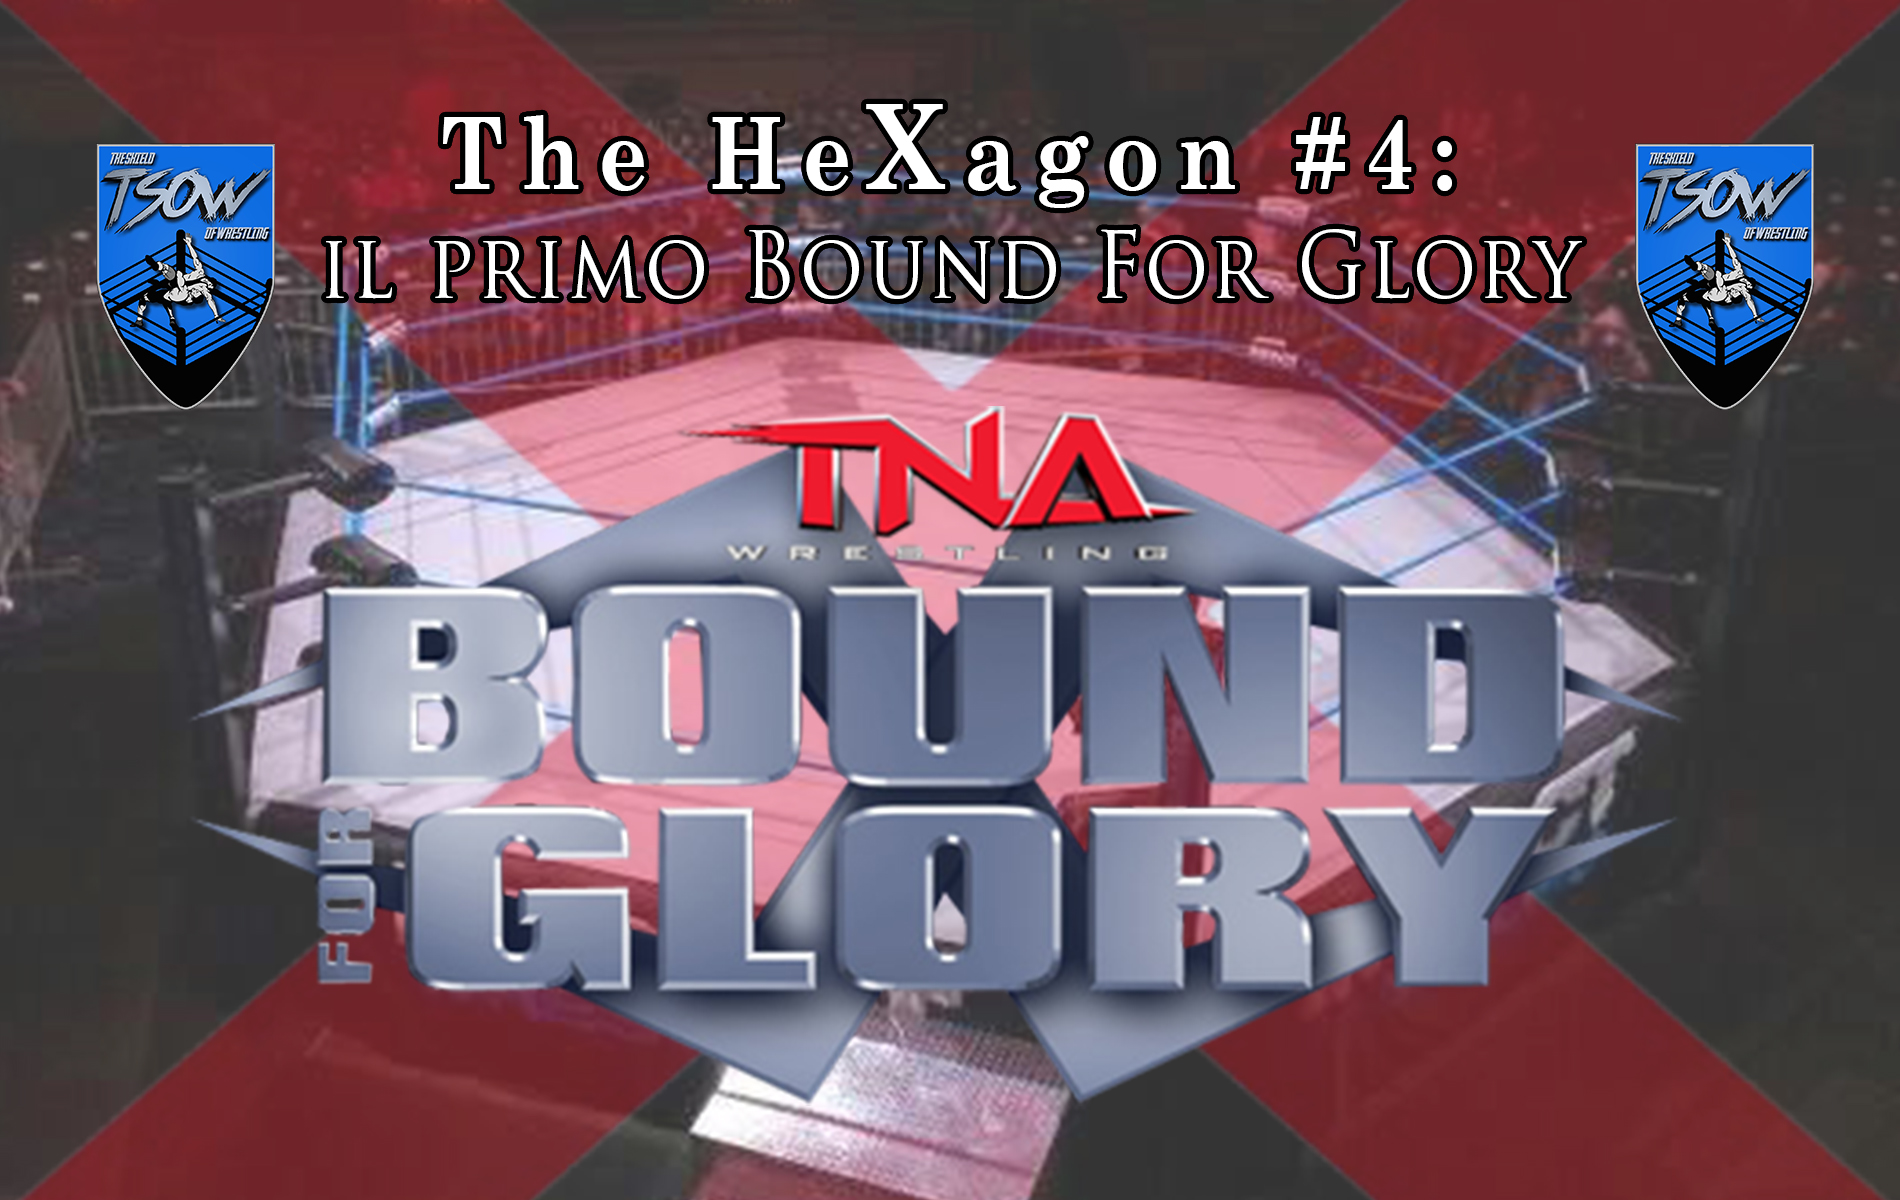 The HeXagon #4: il primo Bound For Glory - Bound For Glory